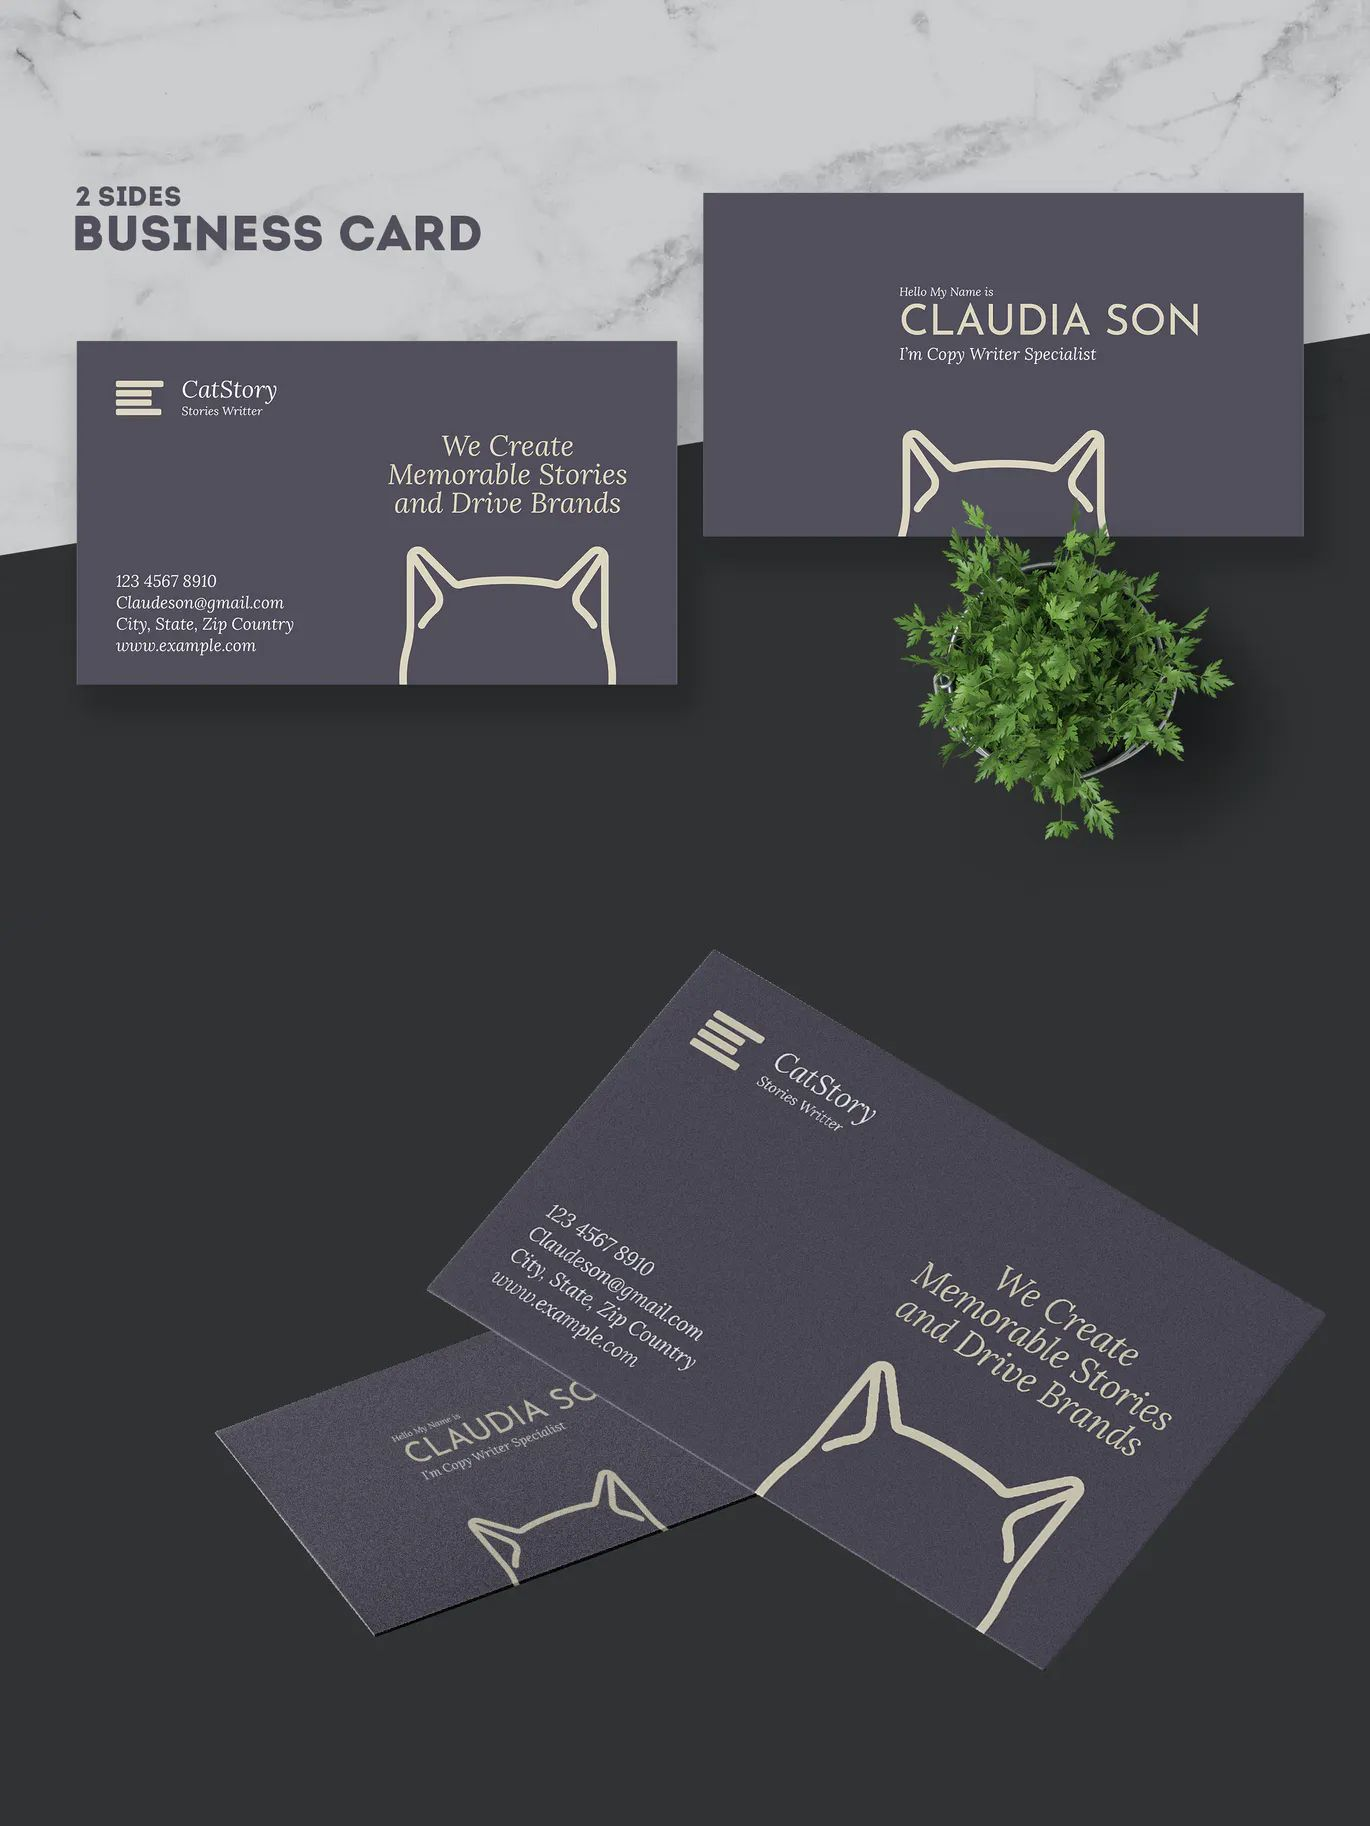 Copy Writer Business Card Template By Afahmy On Envato Elements In 2020 Business Card Template Business Cards Cards